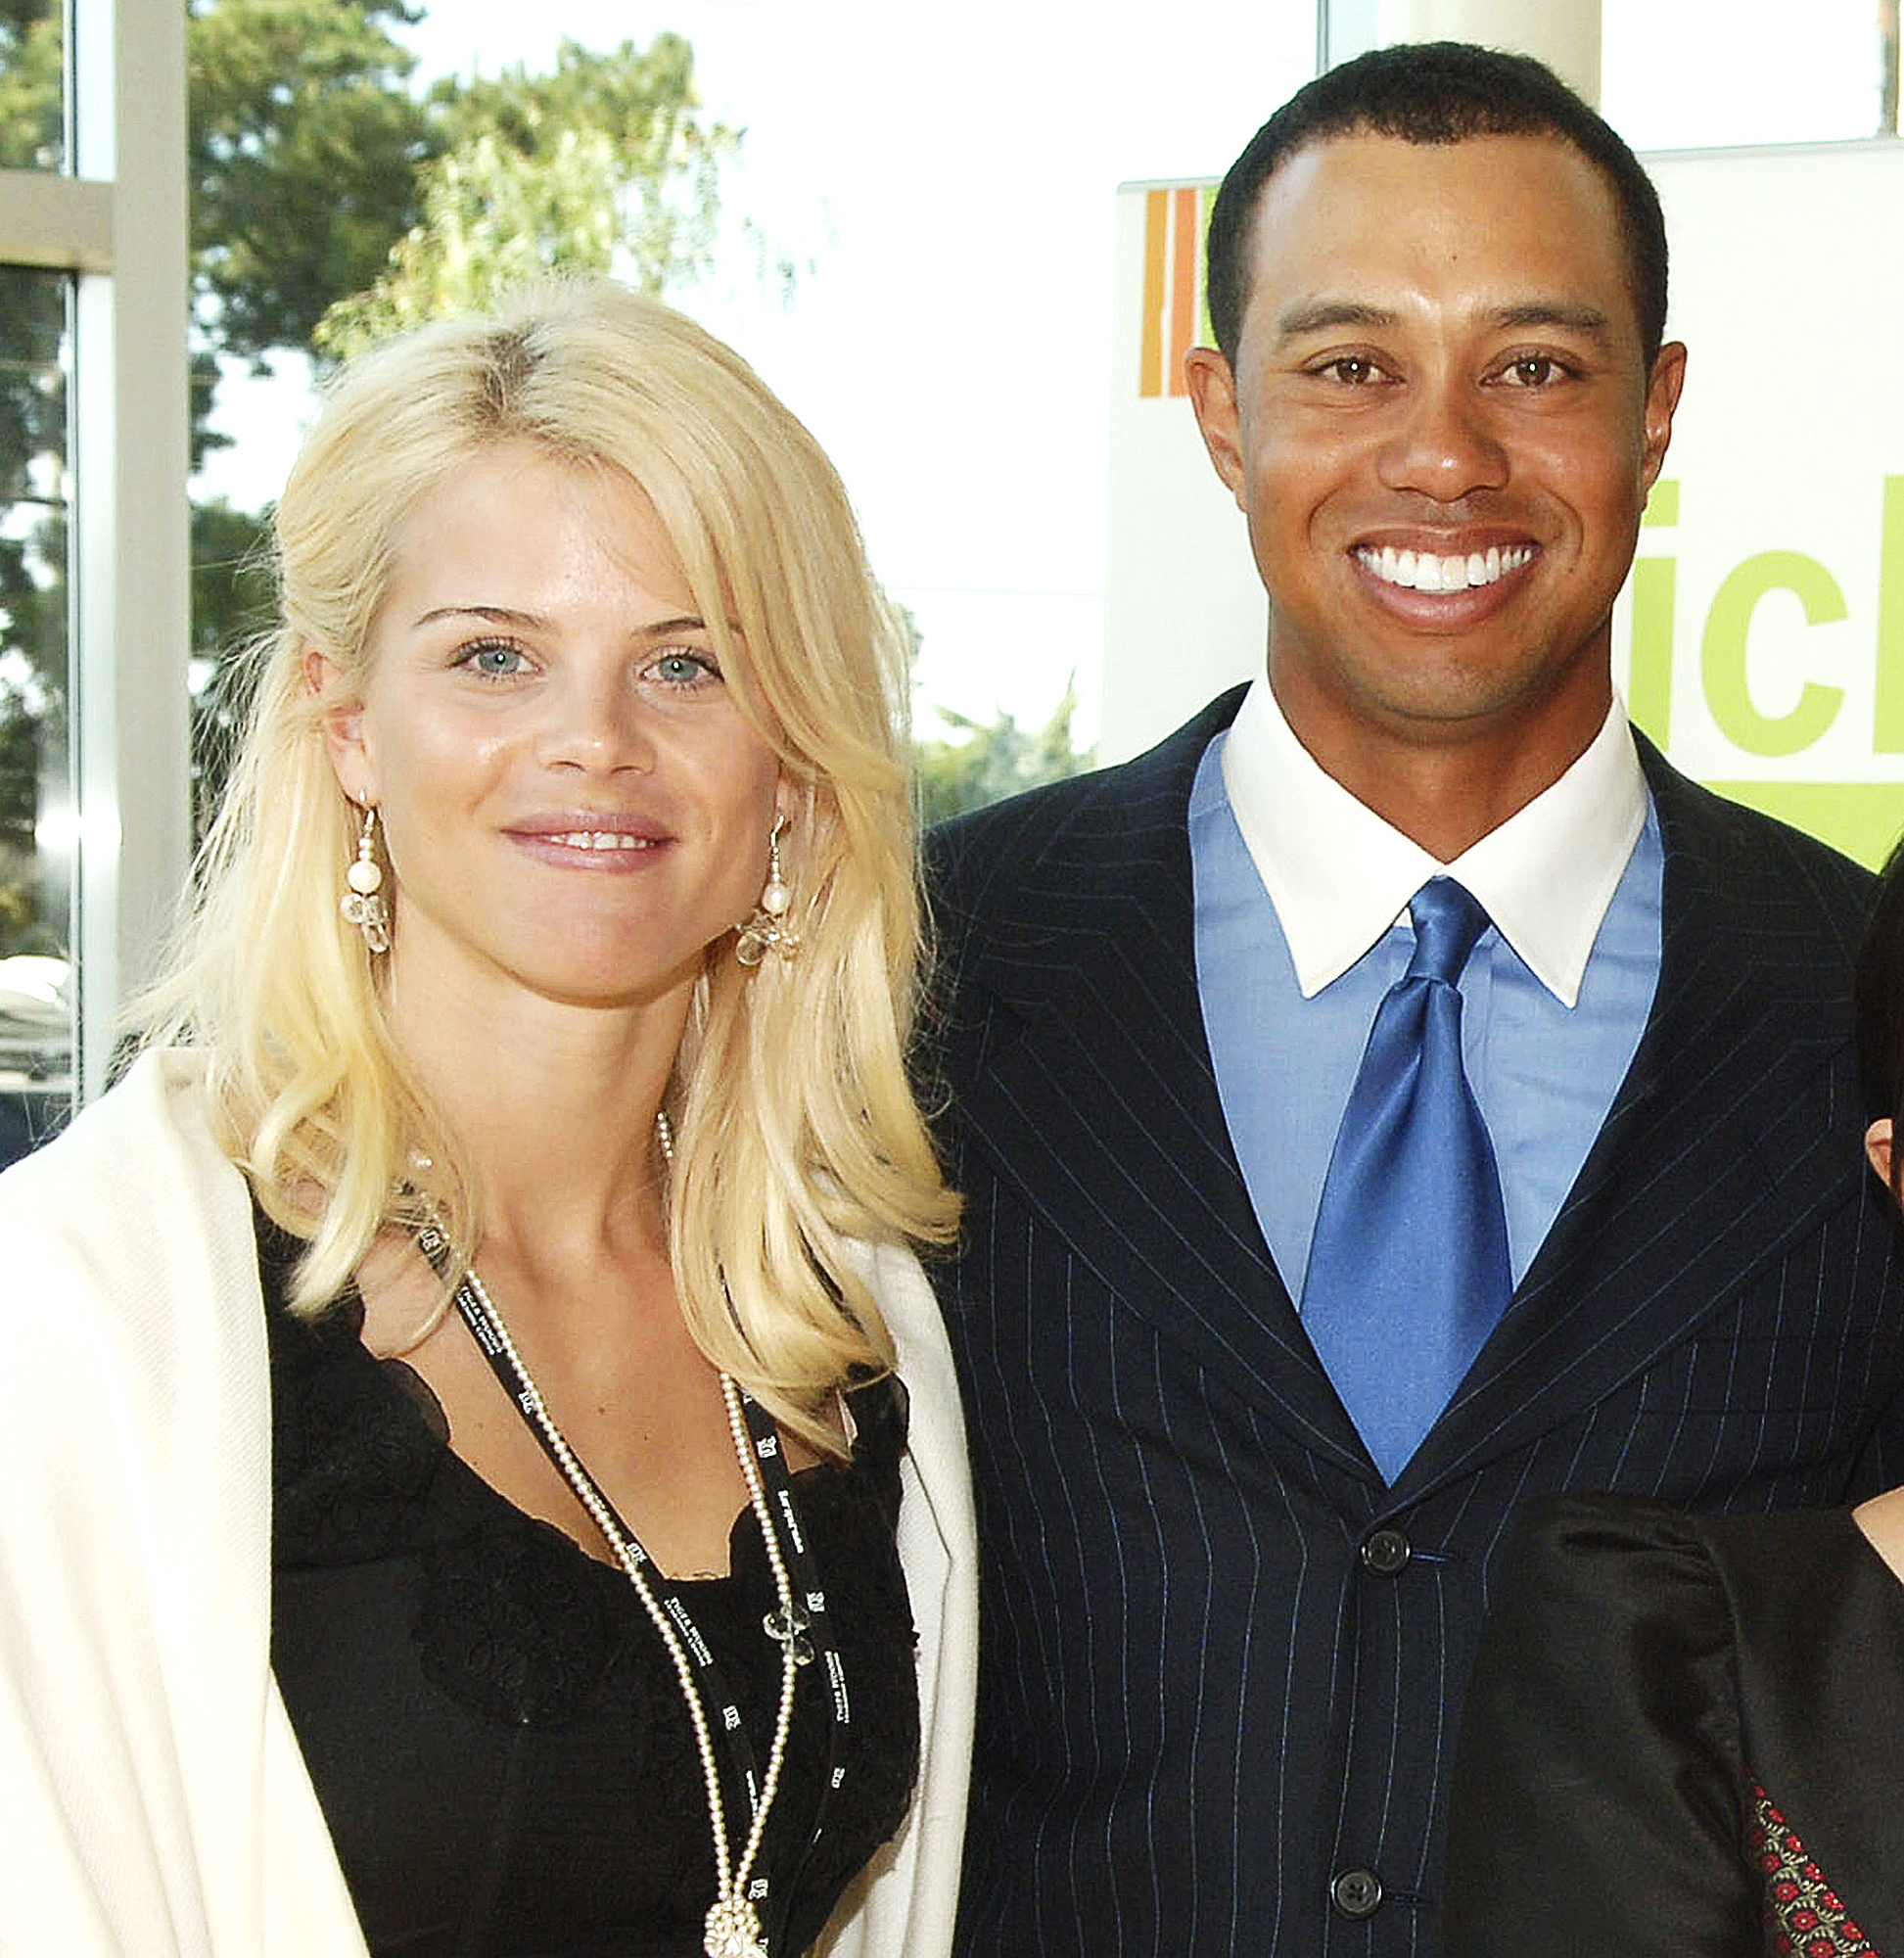 Tiger woods, elin nordegren's quotes about their relationship